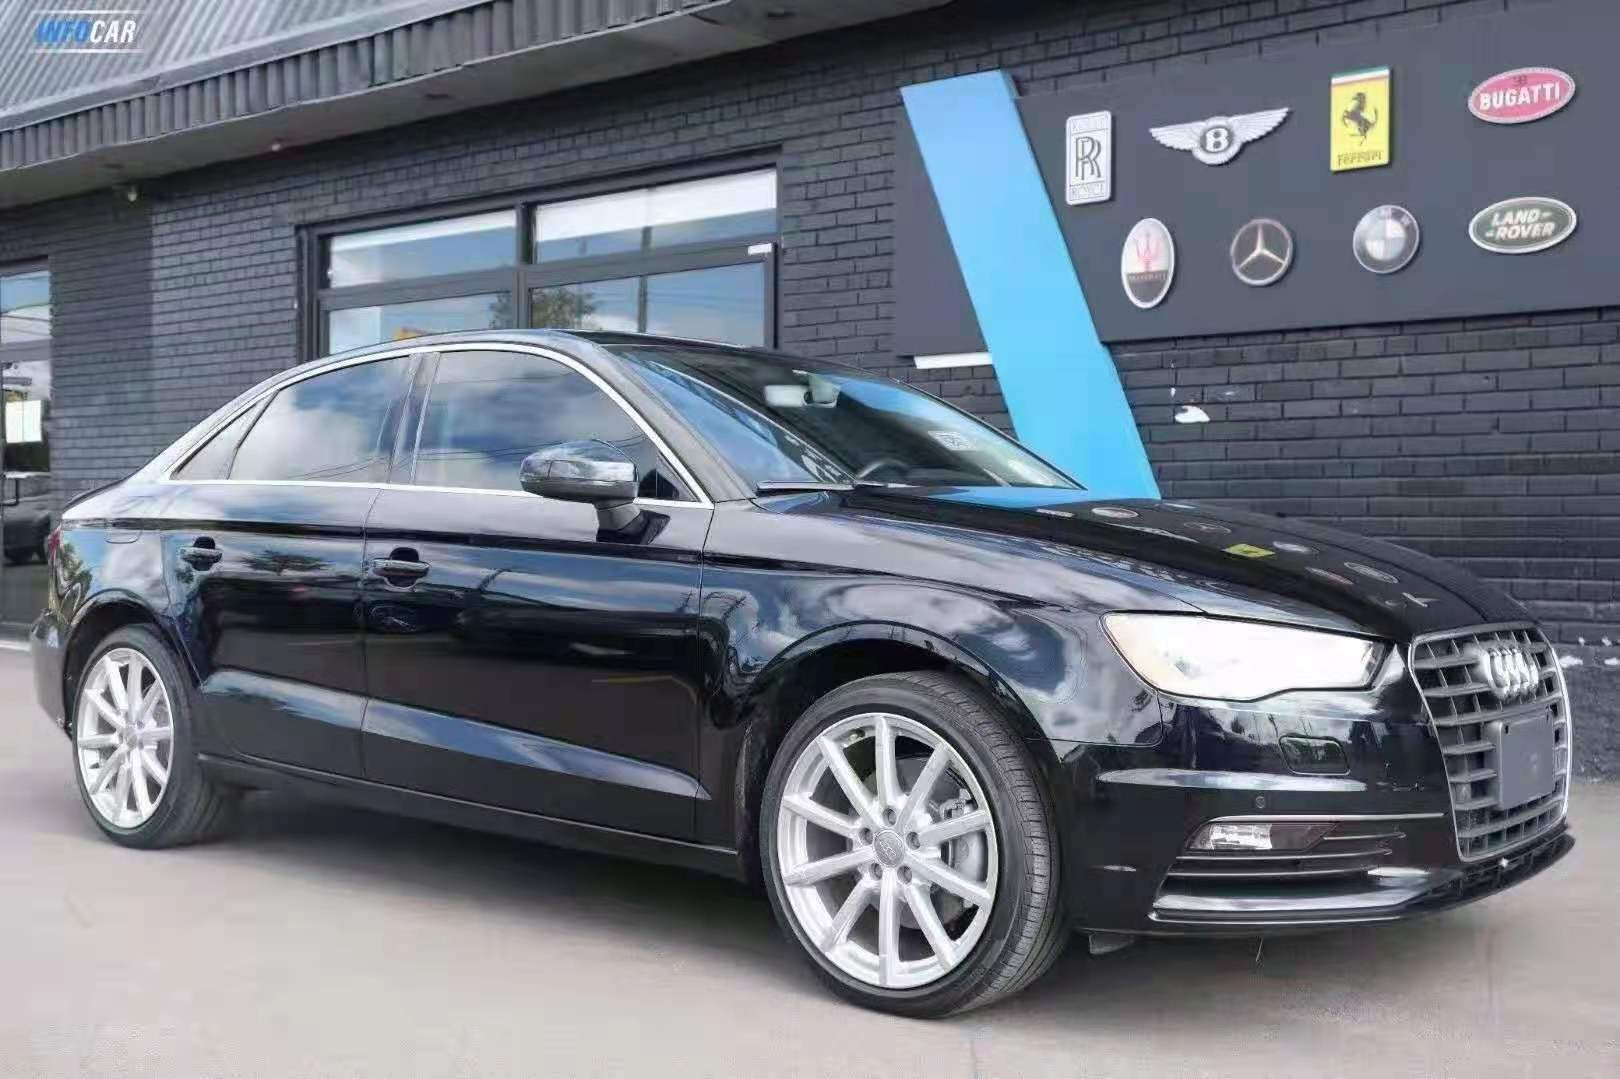 2016 Audi A3 A3 SEDEN - INFOCAR - Toronto's Most Comprehensive New and Used Auto Trading Platform